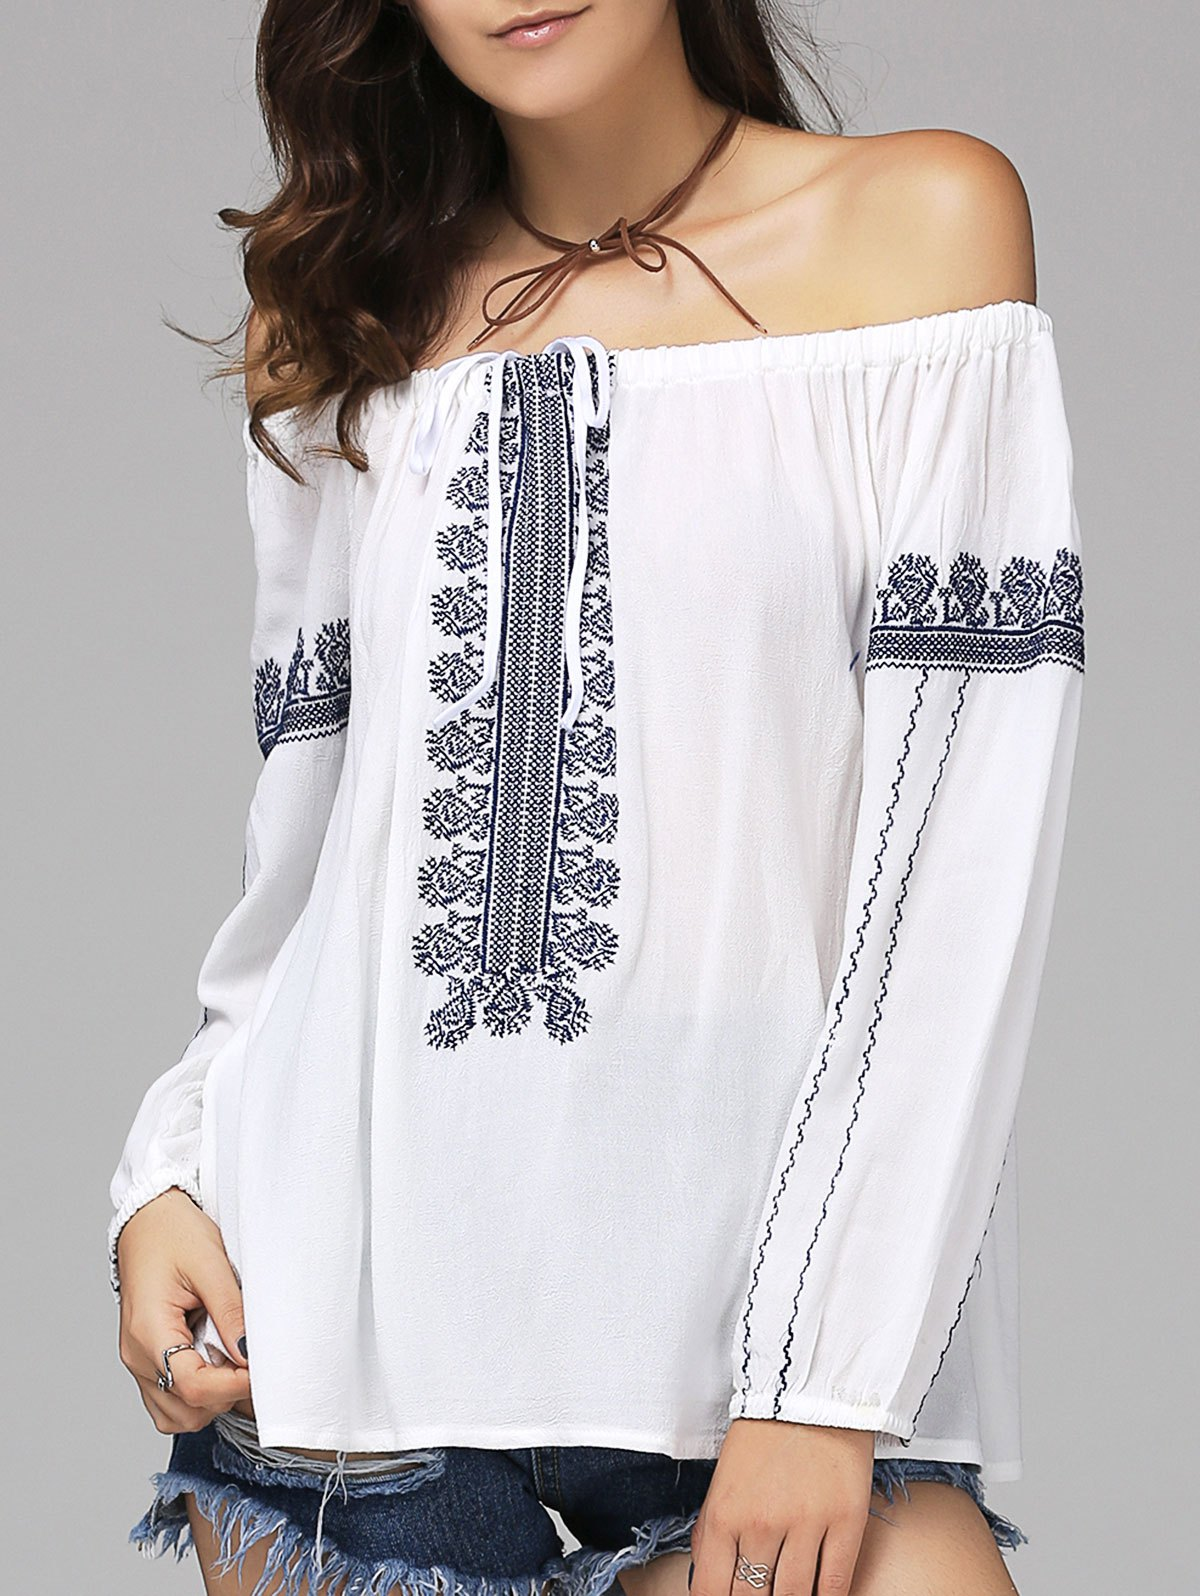 Ethnic Style Women's Off The Shoulder Long Sleeve Blouse - WHITE L